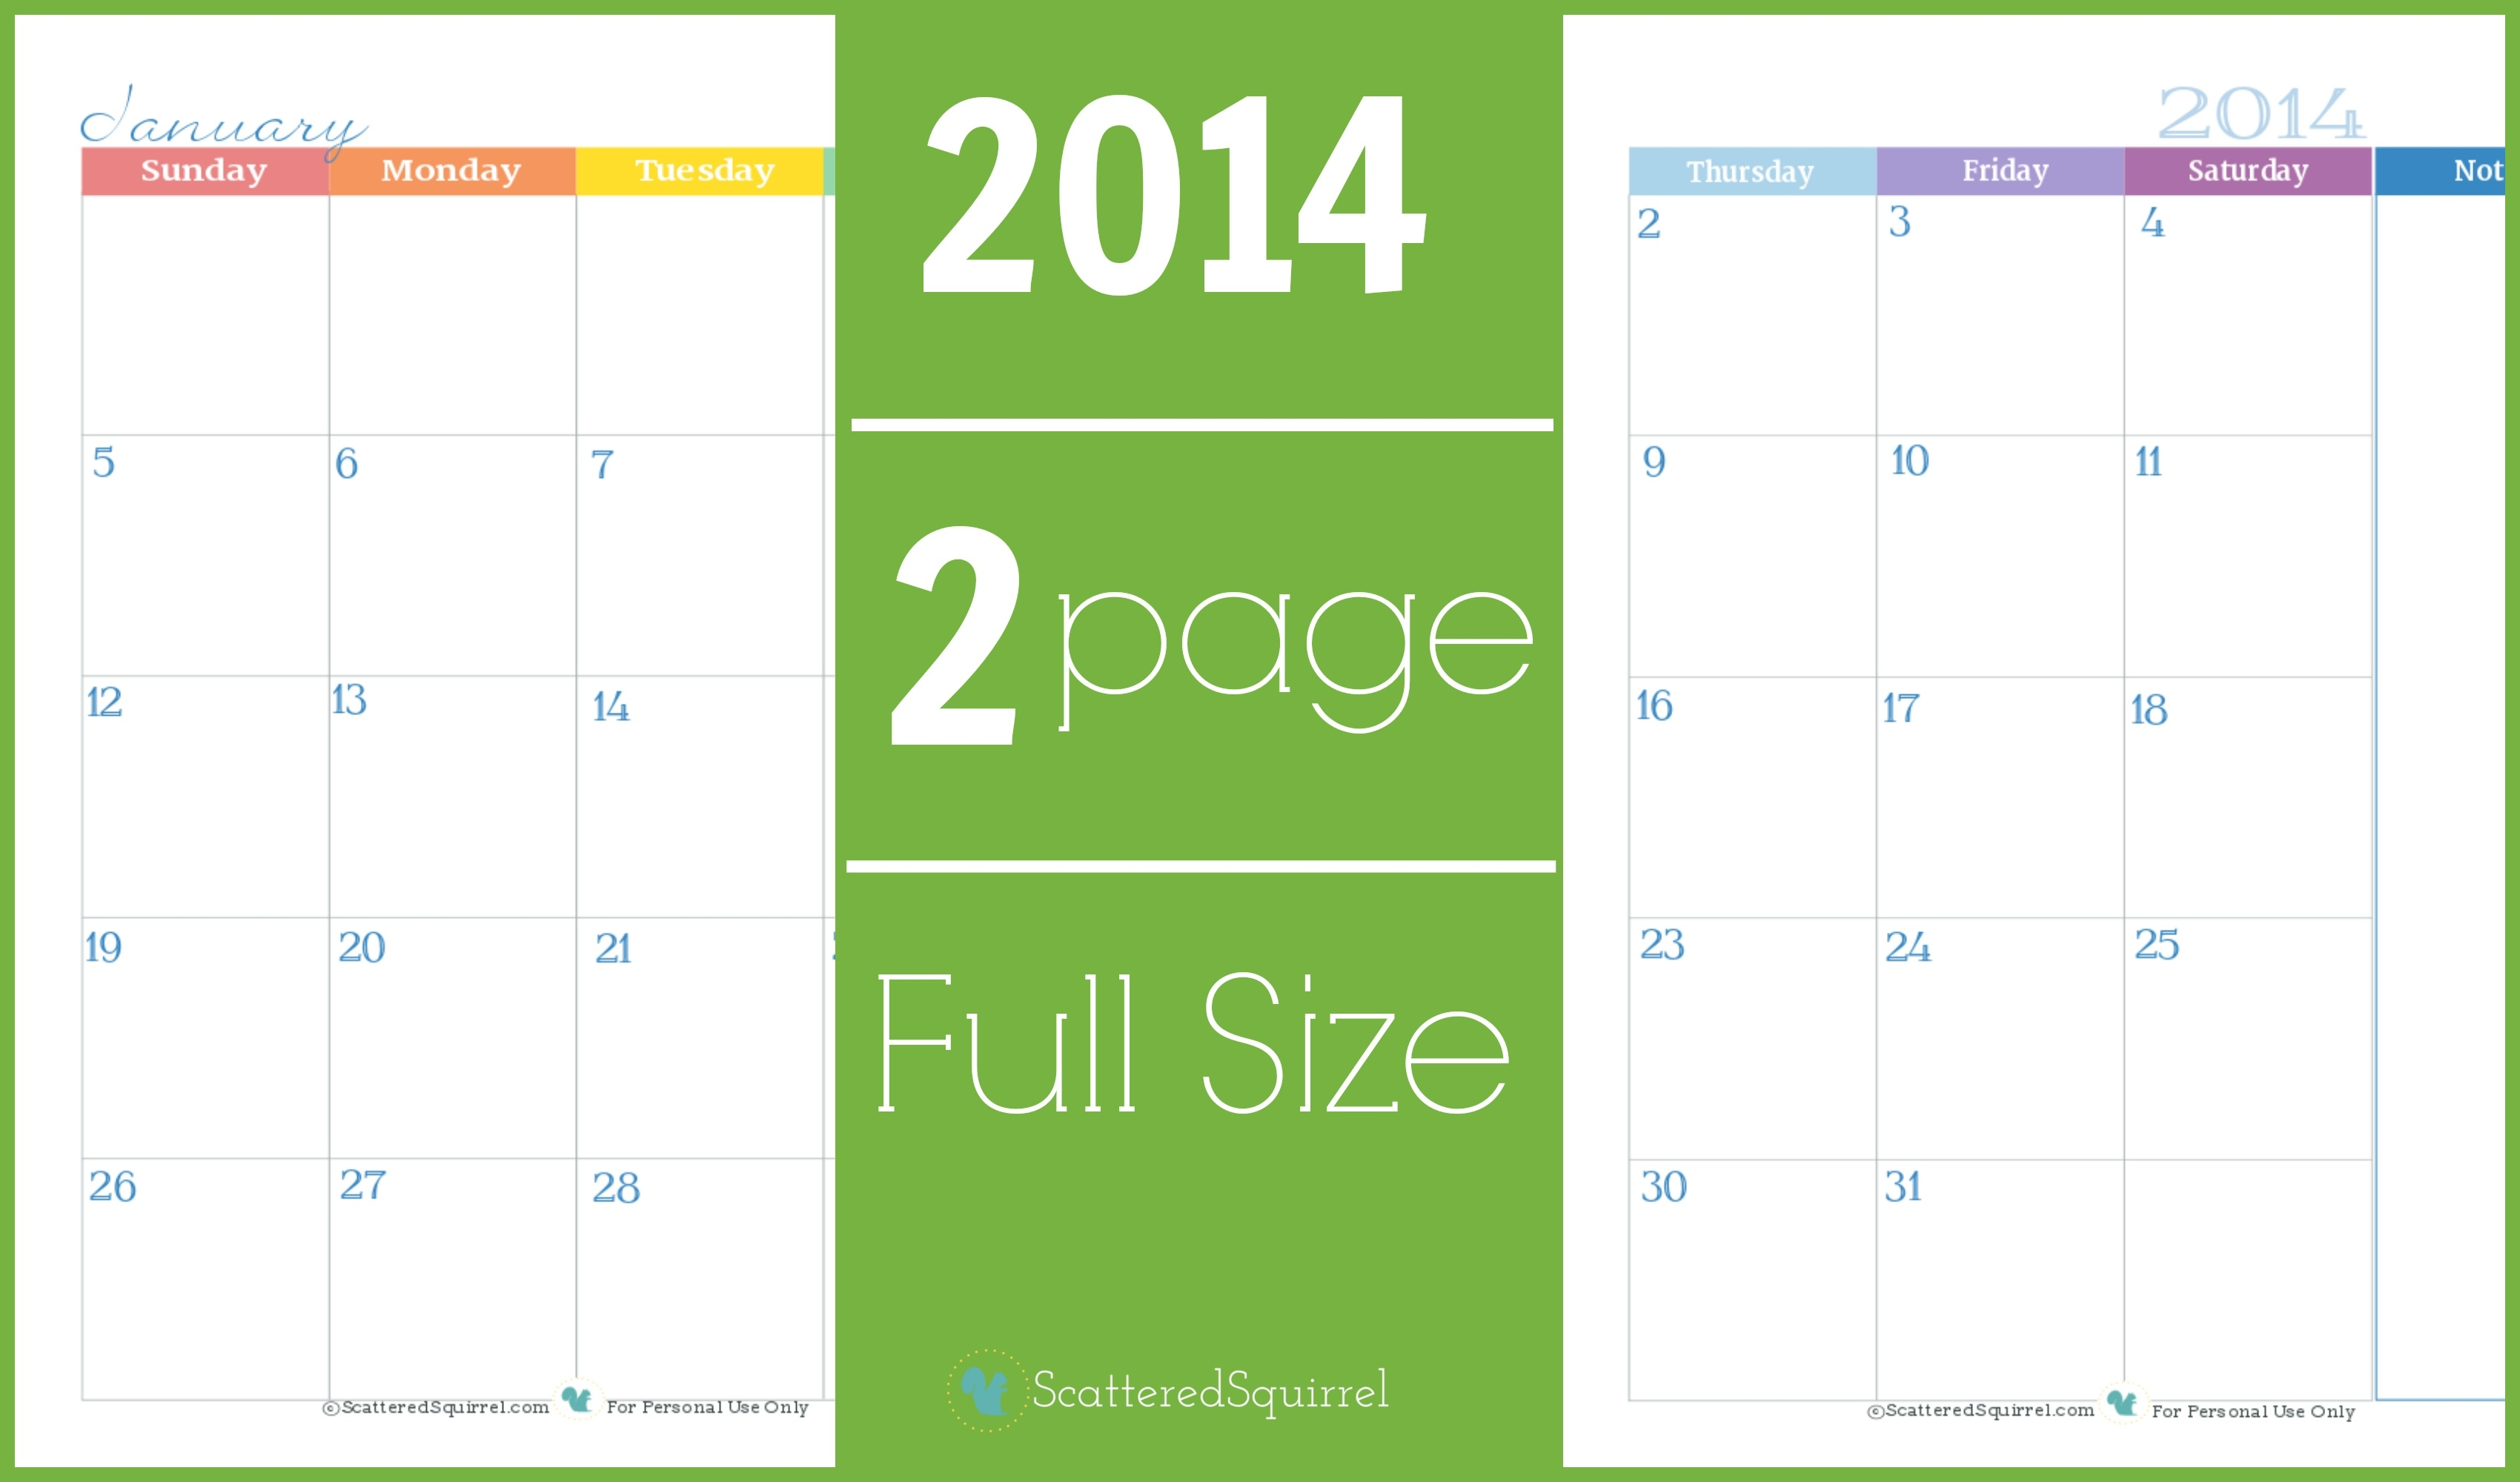 2014 Calendar: Two Page Monthly - Scattered Squirrel  Full Page Monthly Calendar Printable